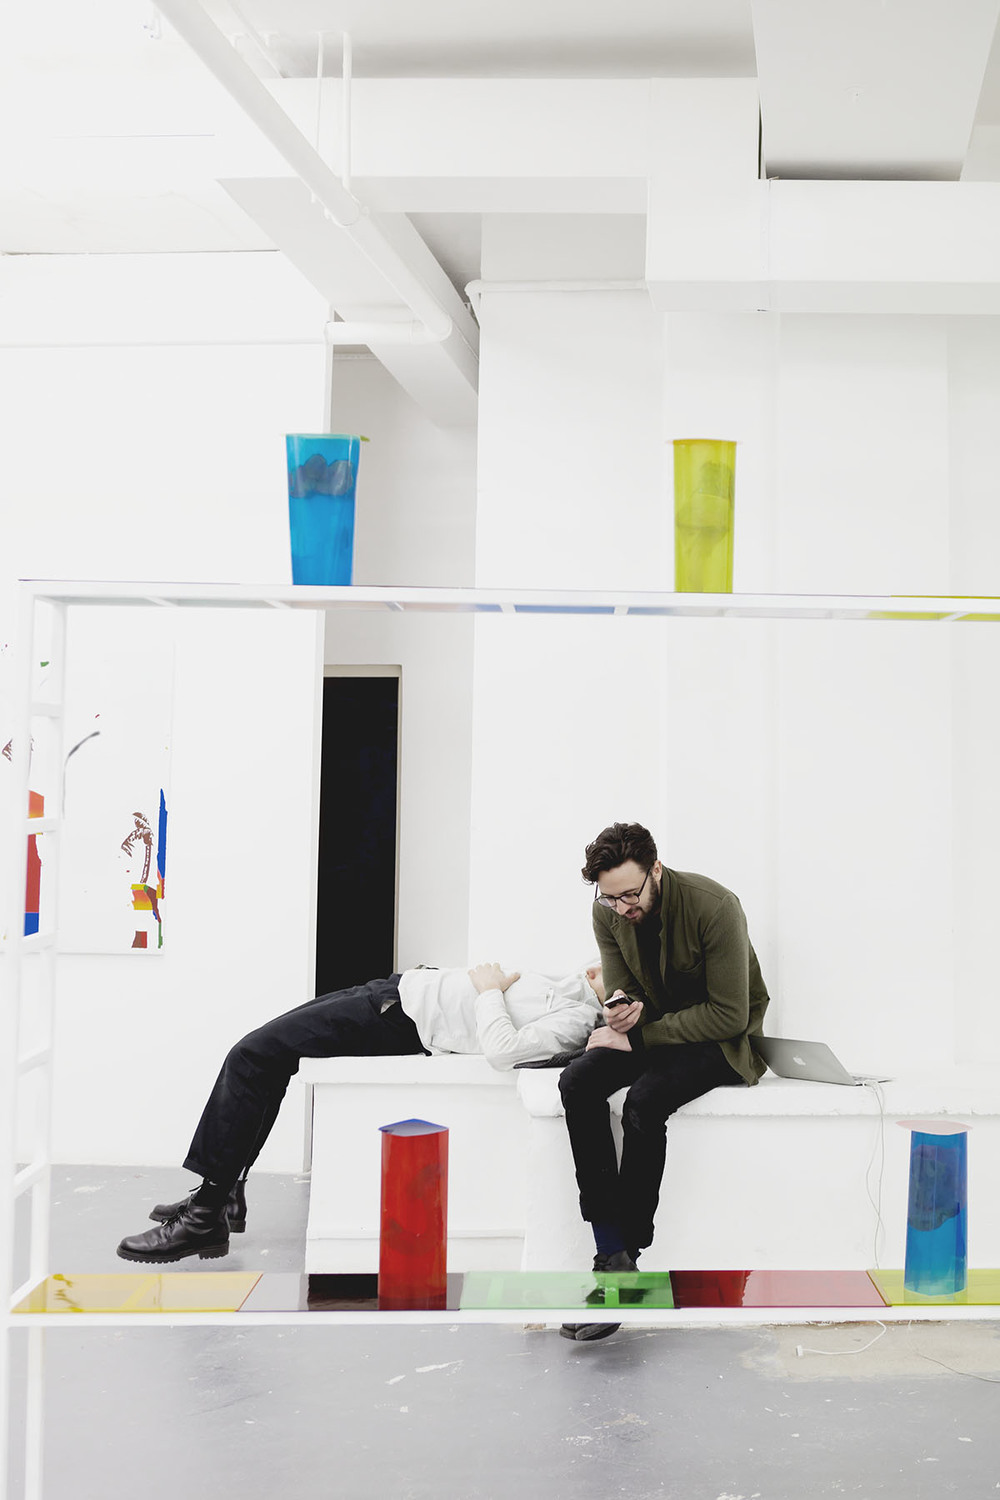 After a long day getting everything ready for the private view, Henry and artist Ben Horns takes a rest before the peoplearrives.